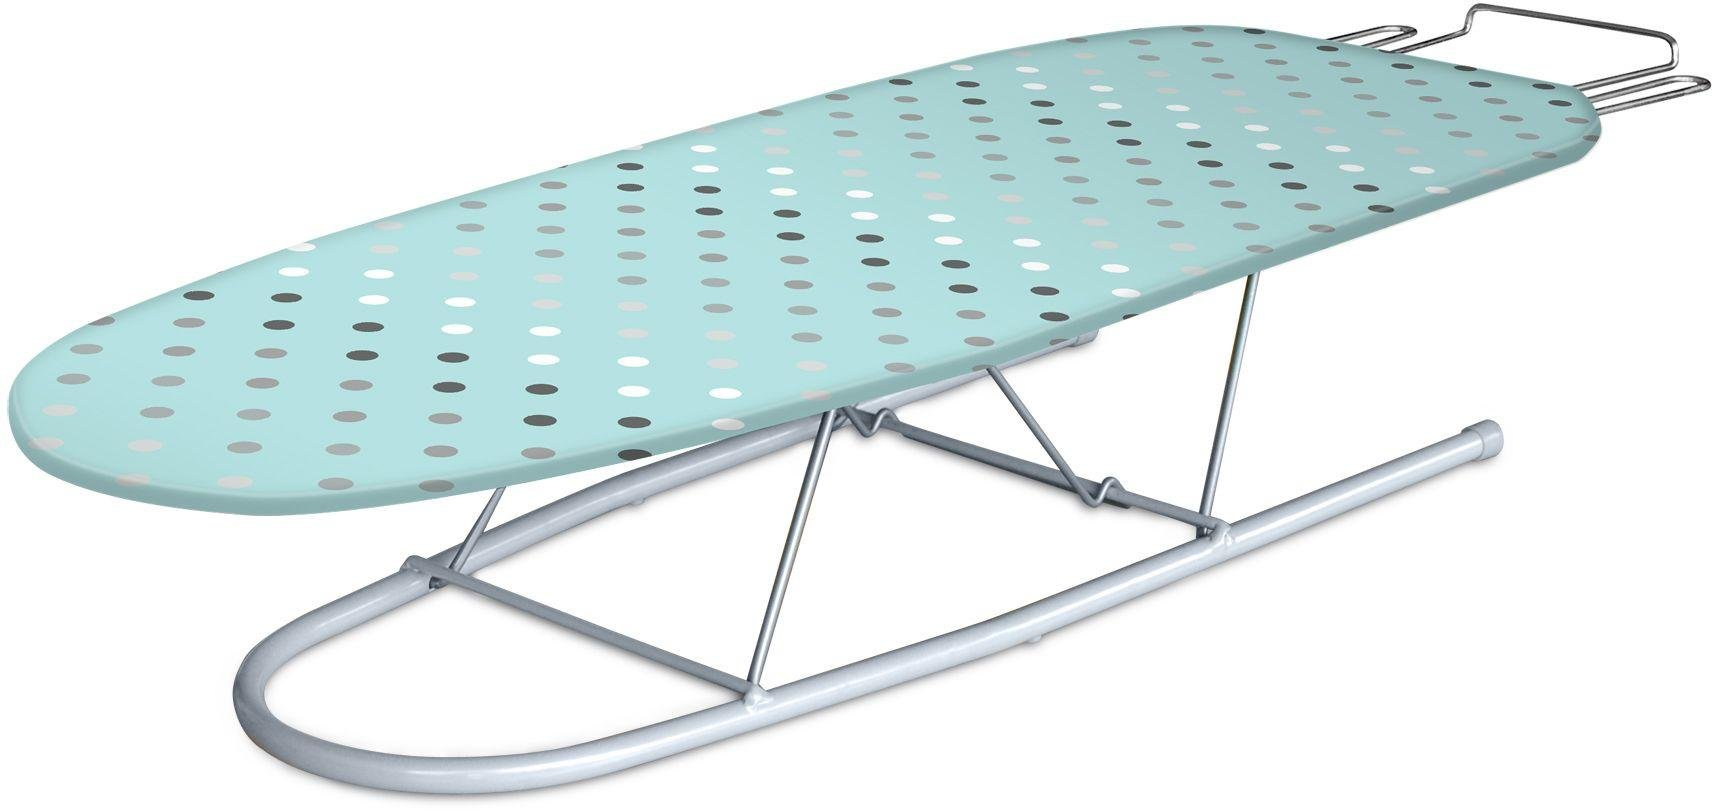 Minky 79 x 29cm Table Top Ironing Board - Silver